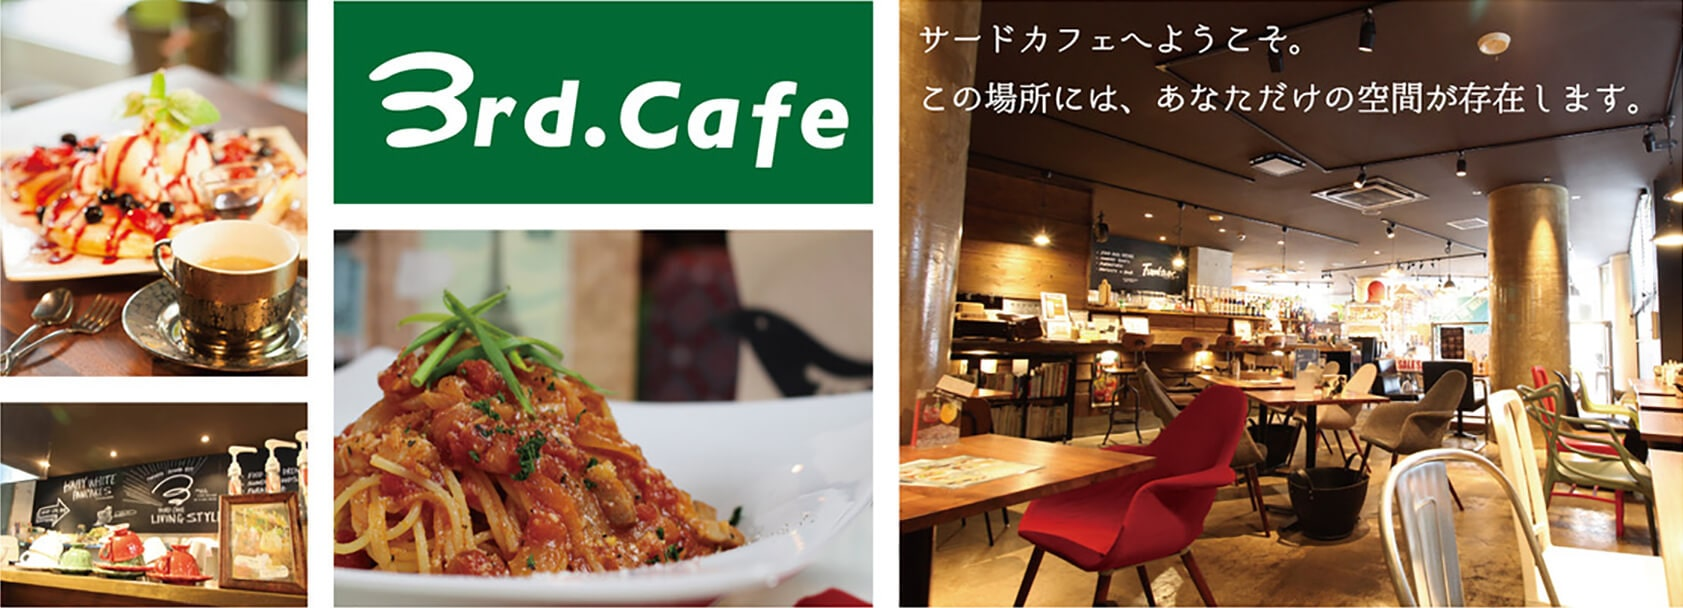 3rd cafe main01